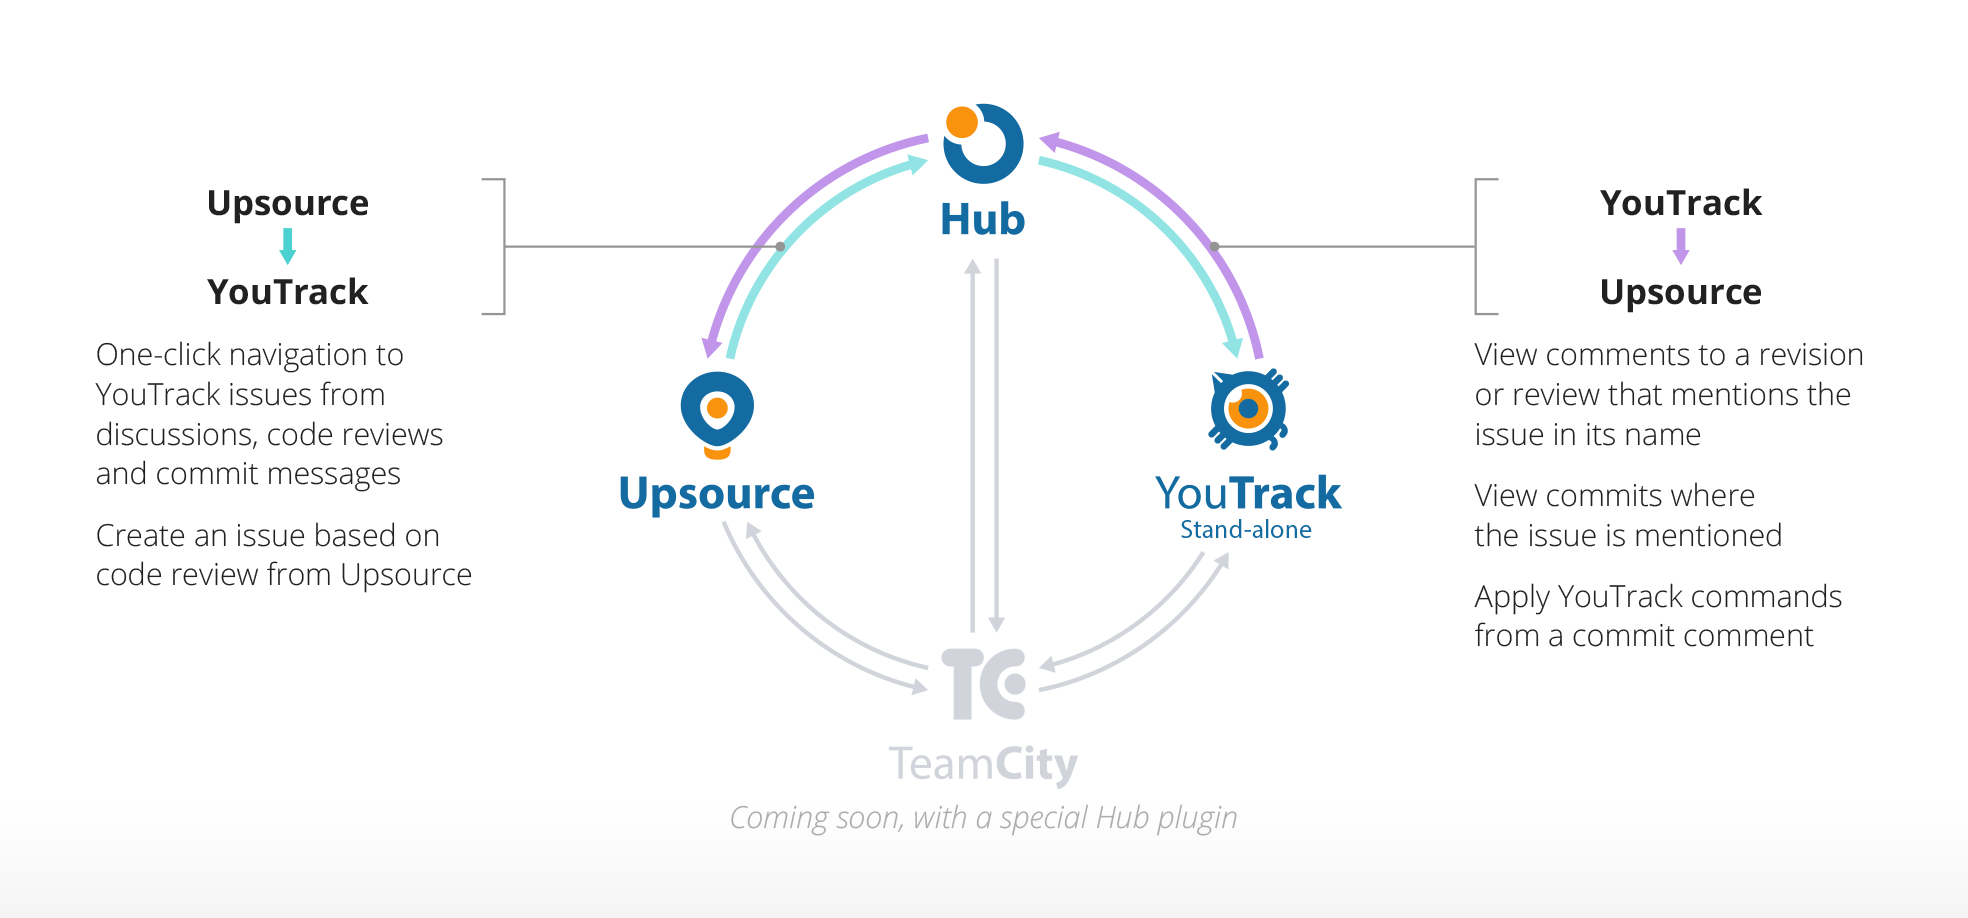 hub+youtrack+upsource